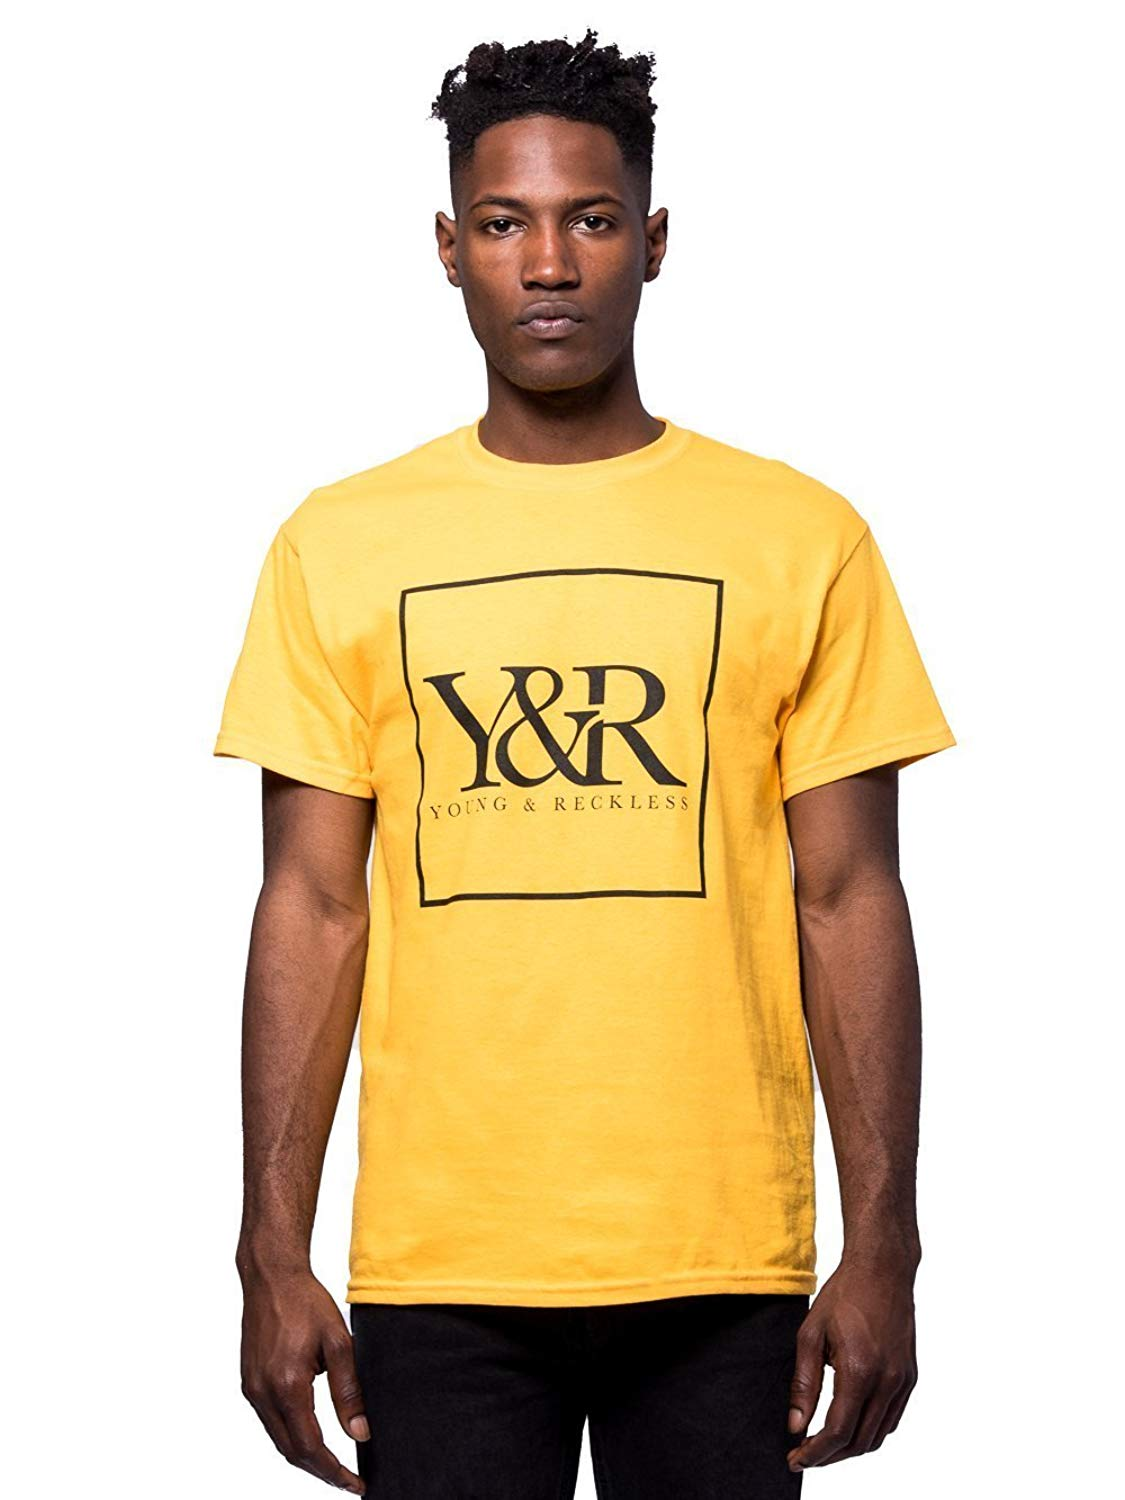 b4ad6fd67 Get Quotations · Young and Reckless - Trademark Box Logo Tee - Gold - -  Mens - Tees -